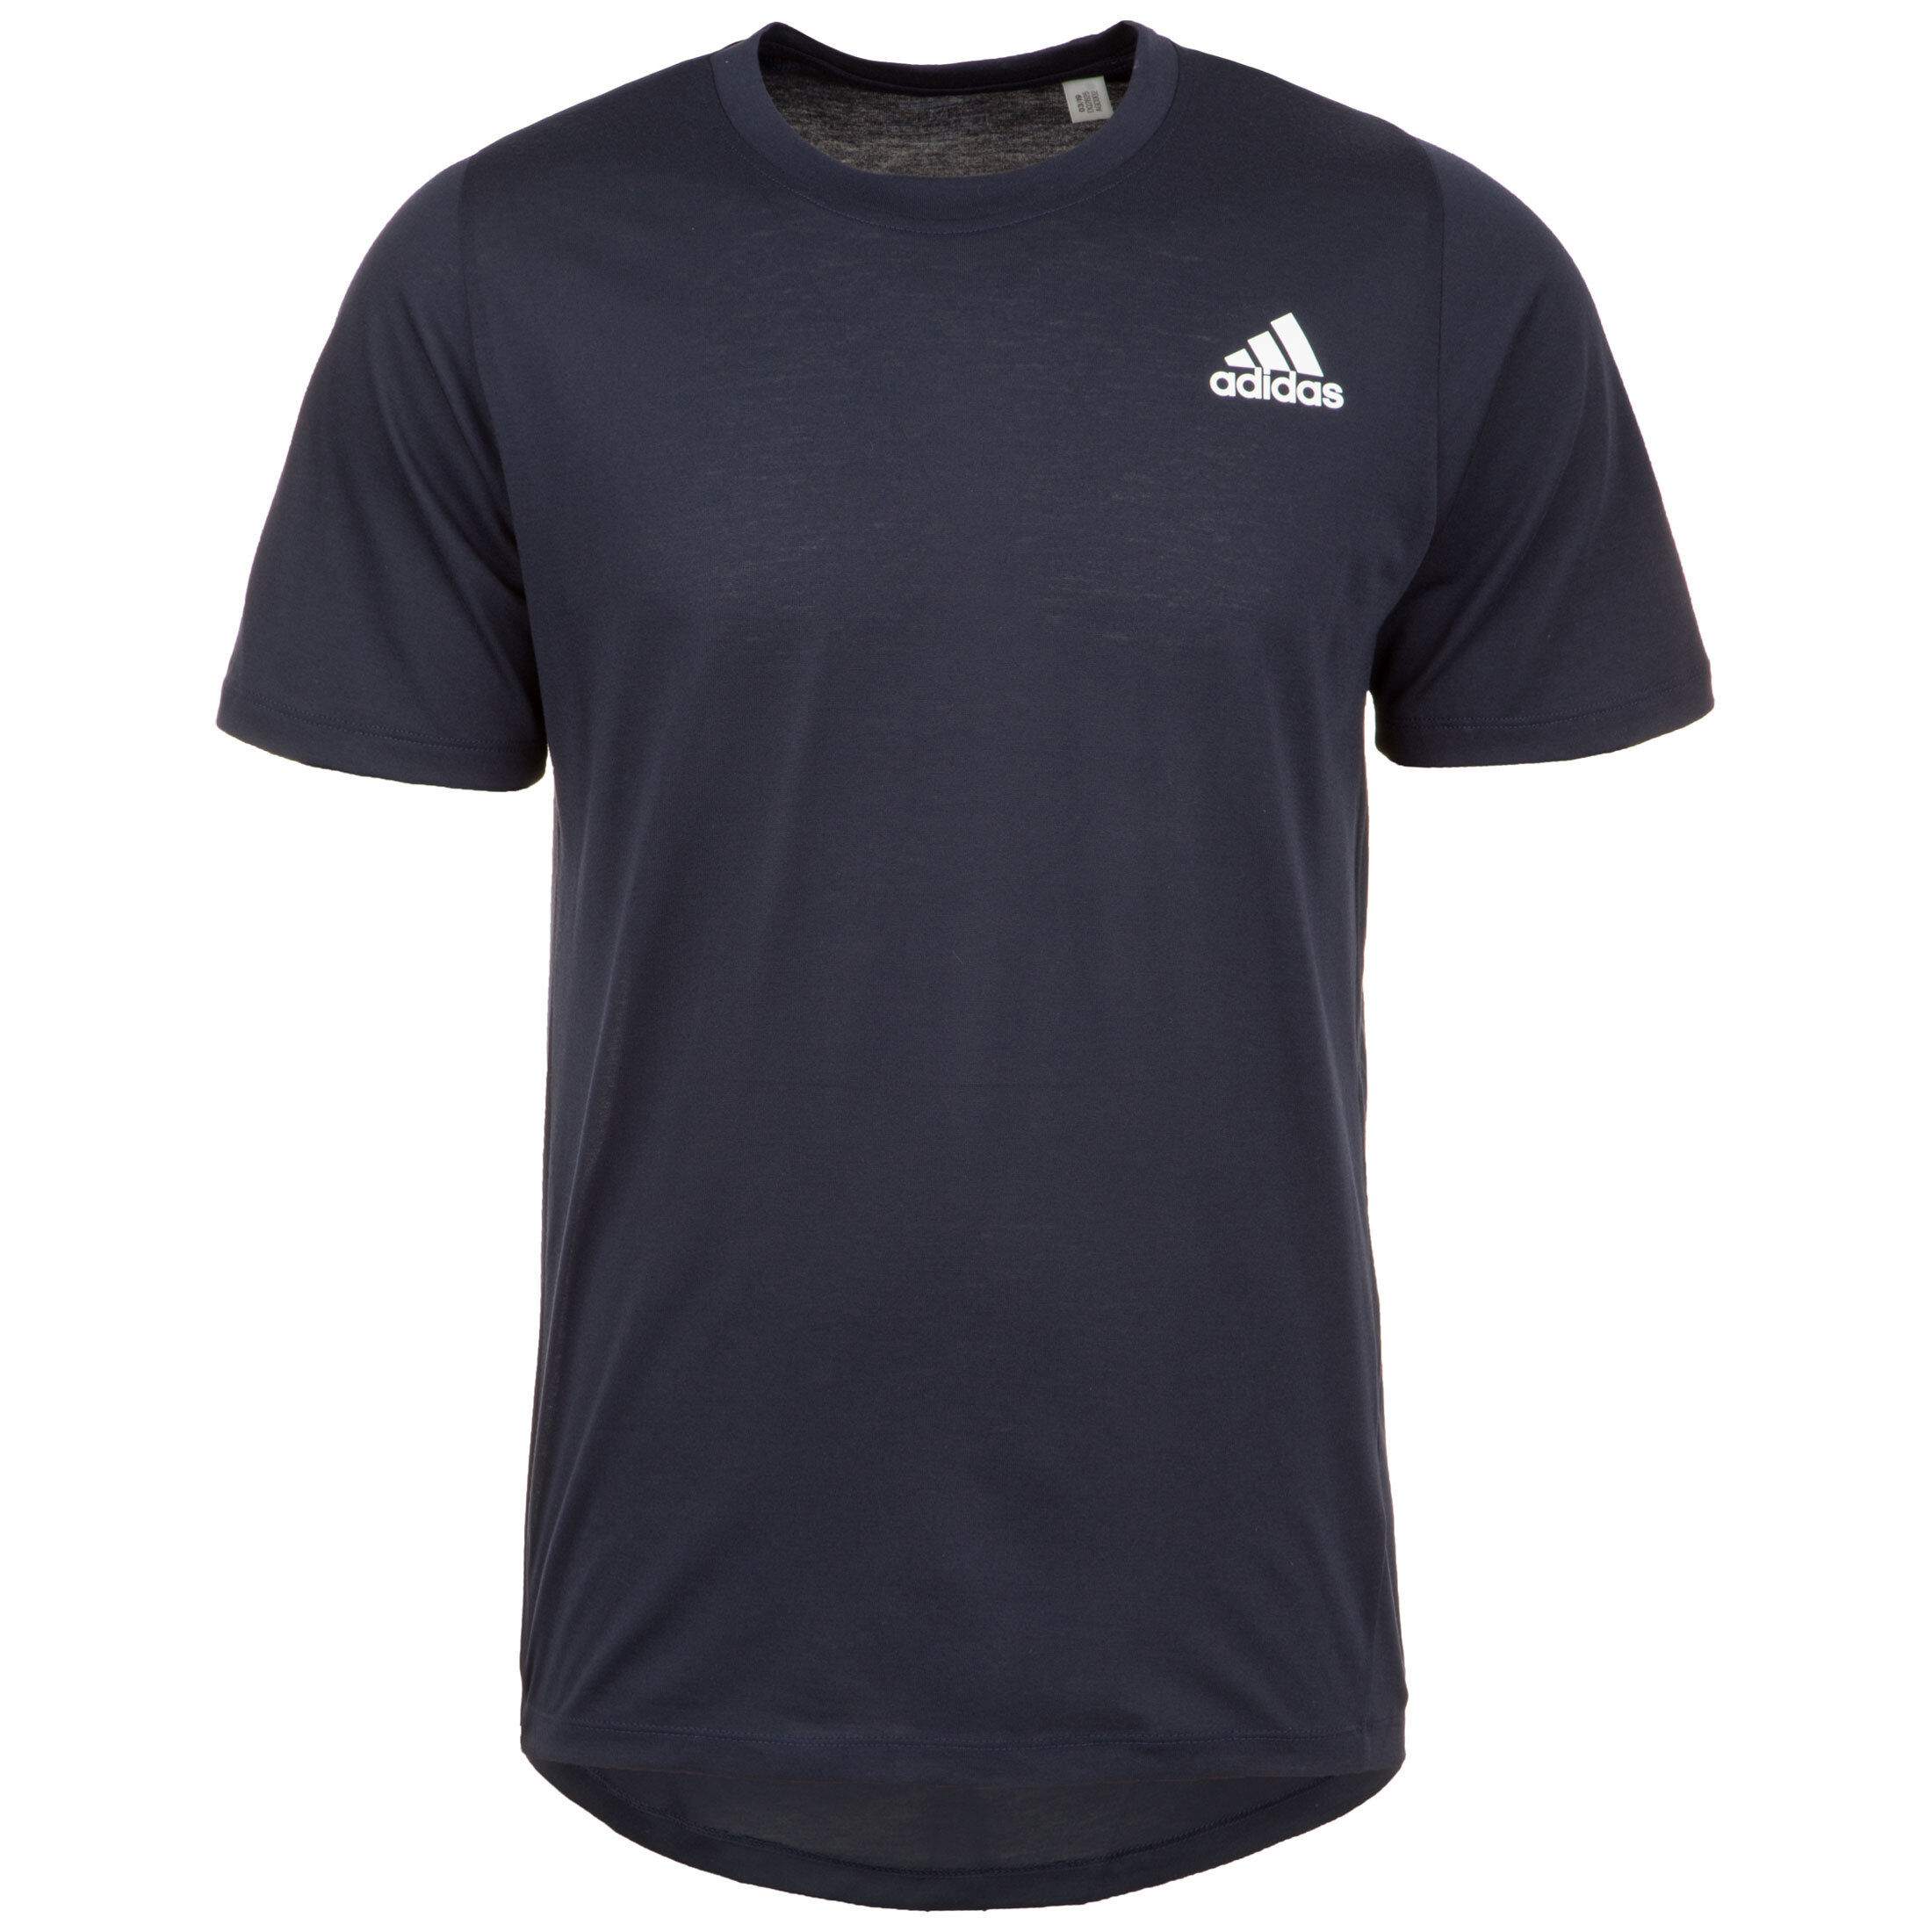 Trainingsbekleidung adidas Performance   bei OUTFITTER